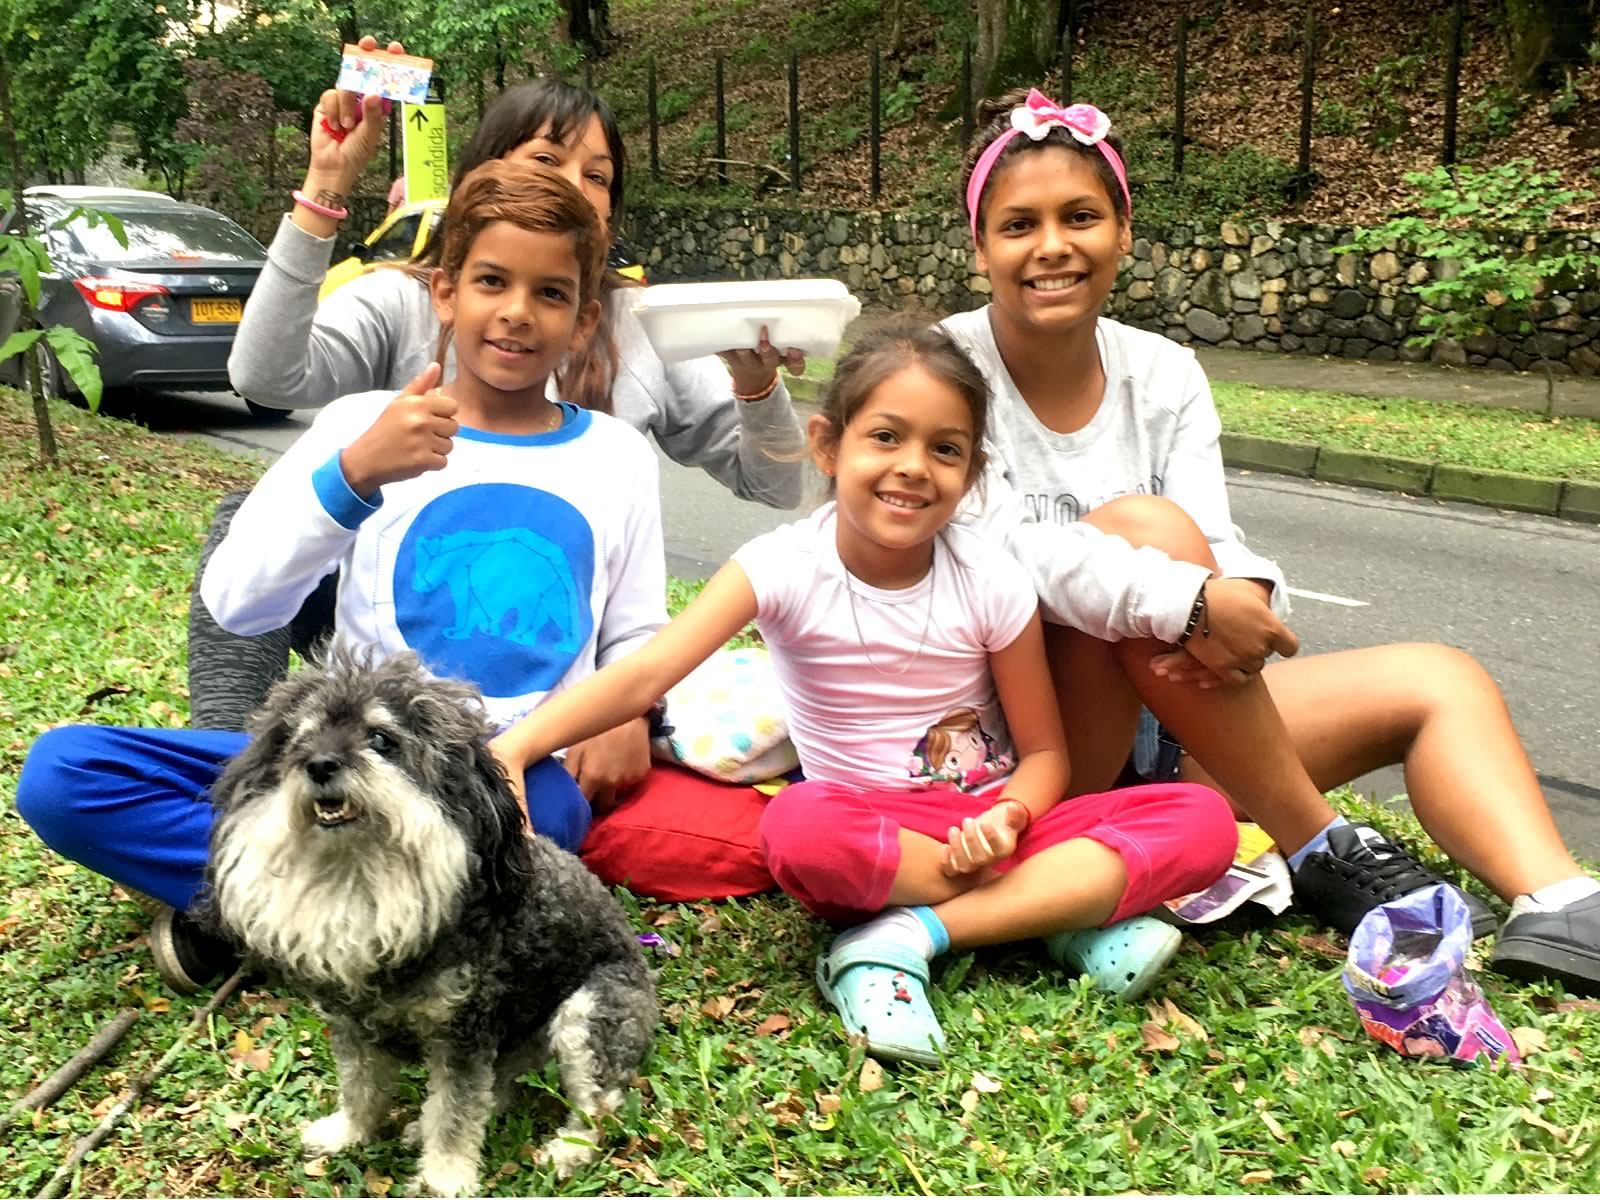 Willie poses with a Venezuelan family after providing them with a meal in Medellin Colombia